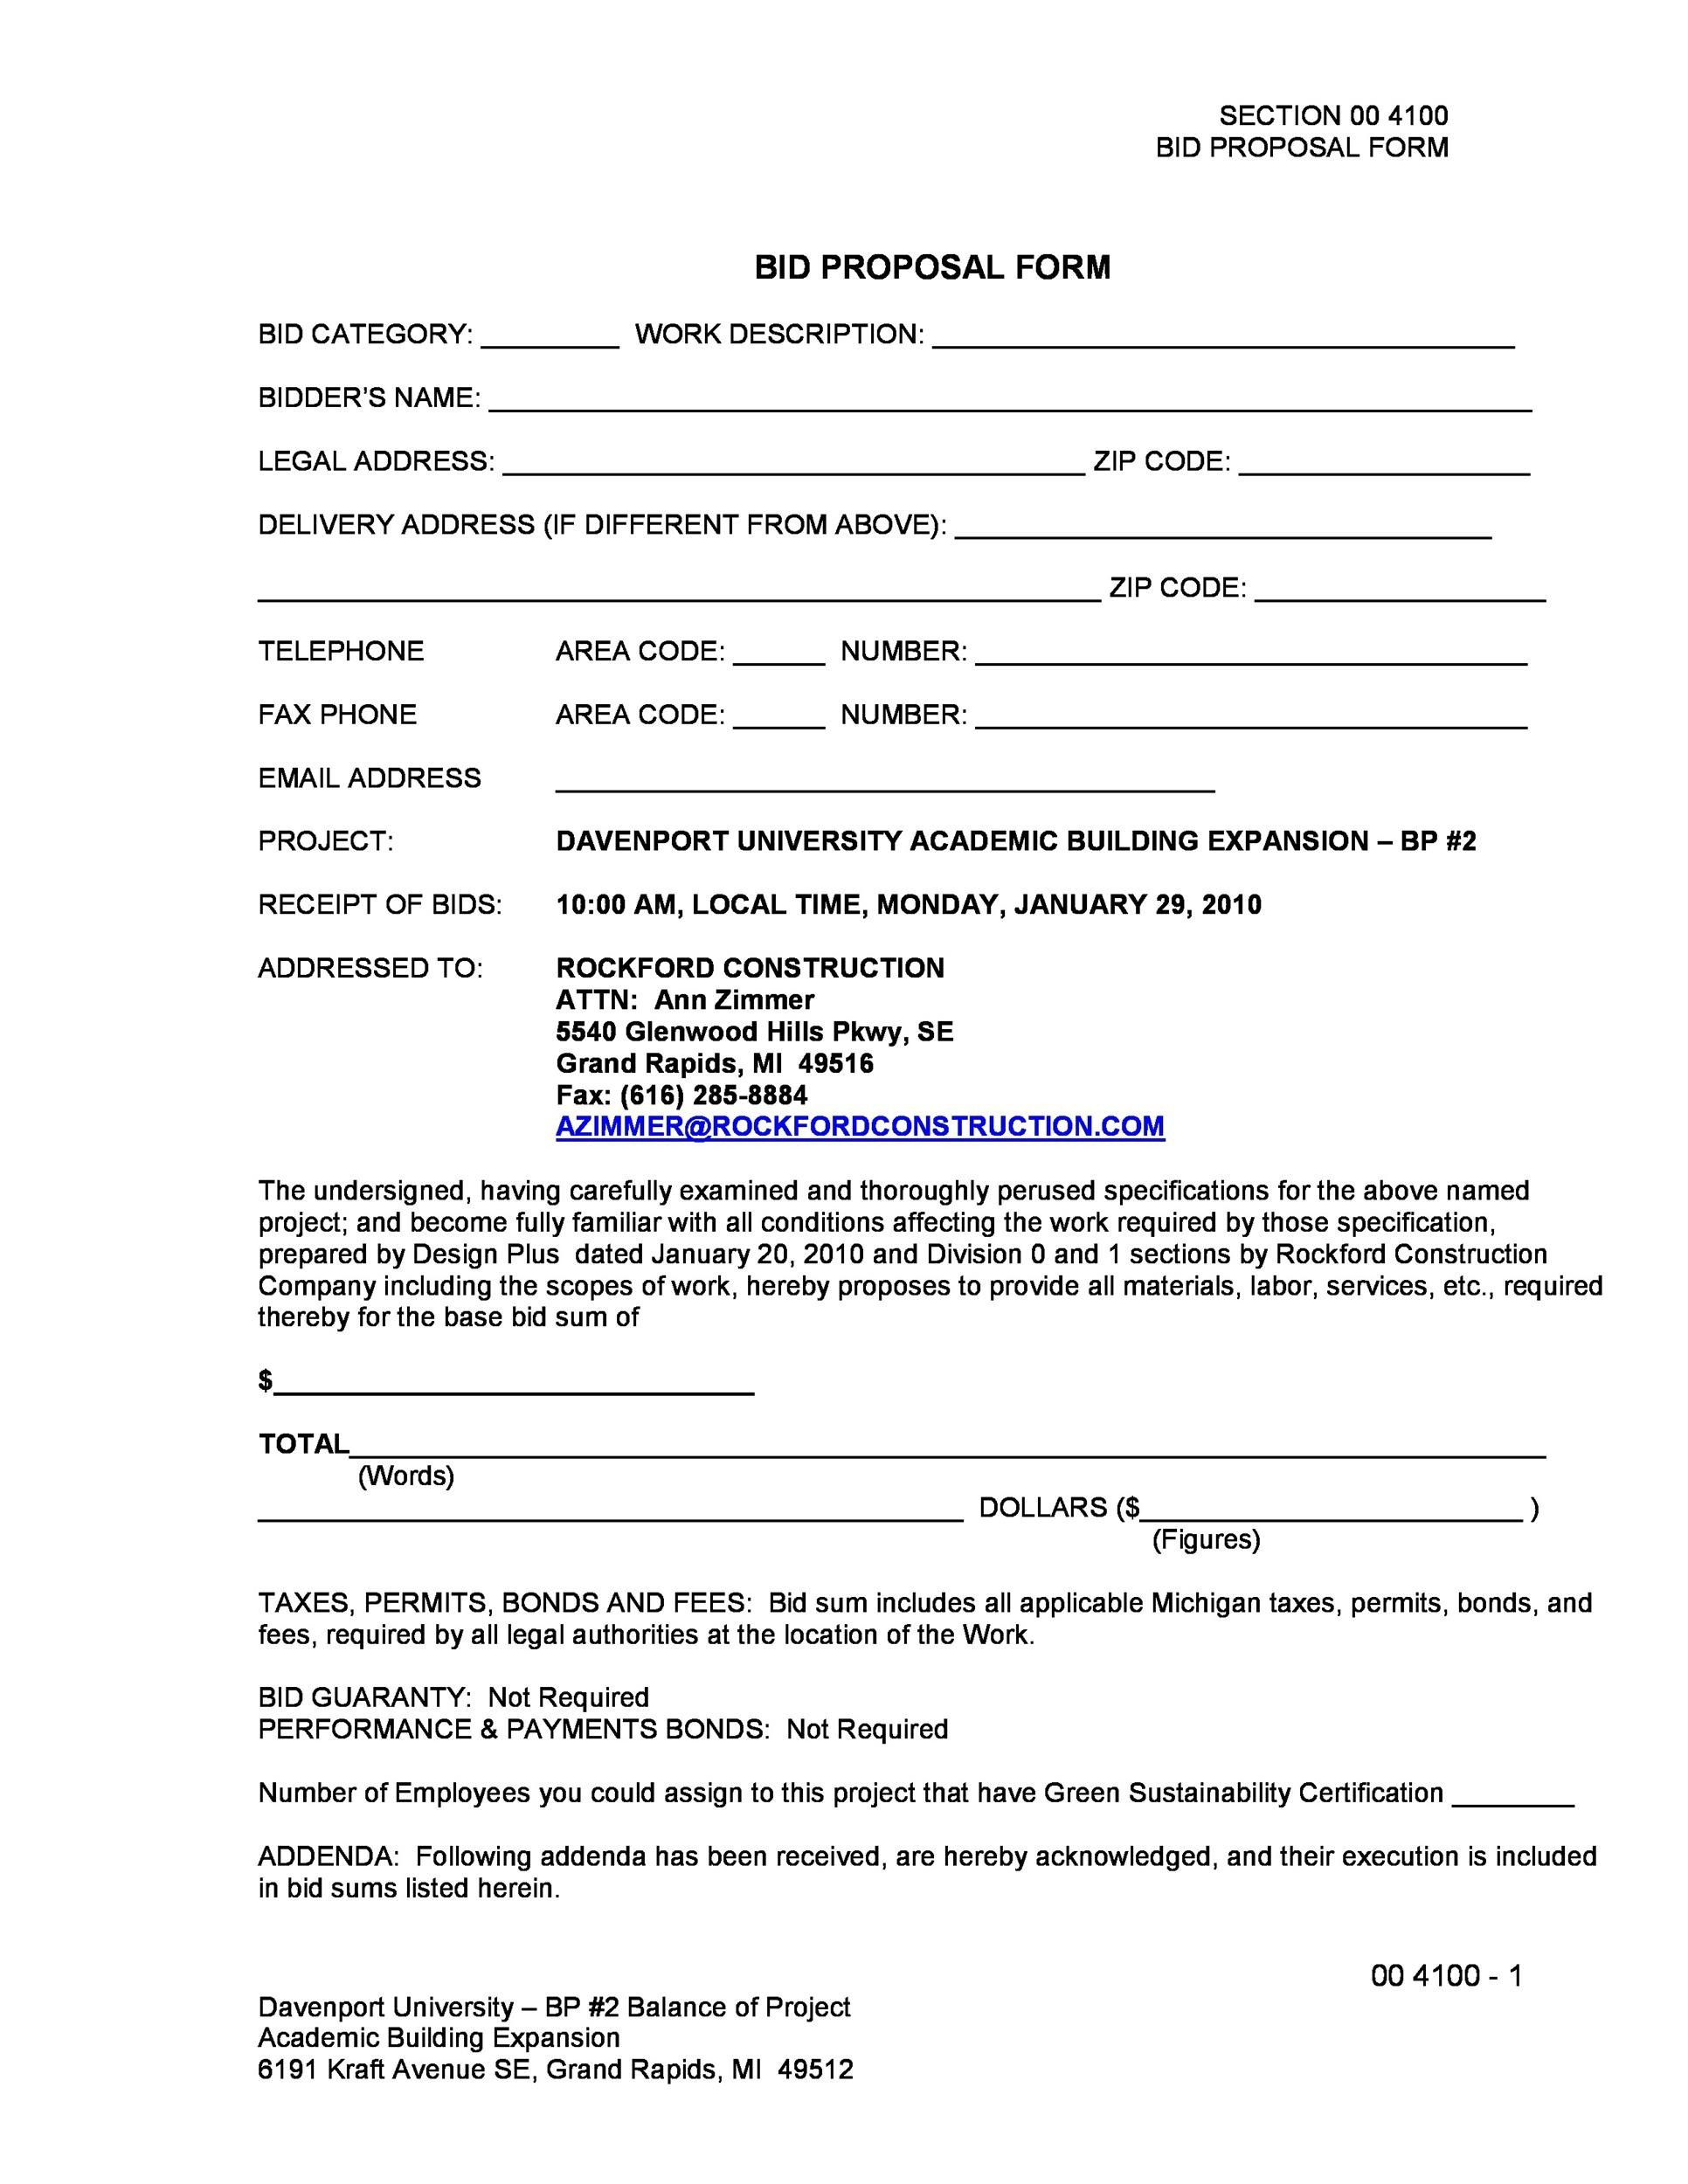 printable bid proposal forms